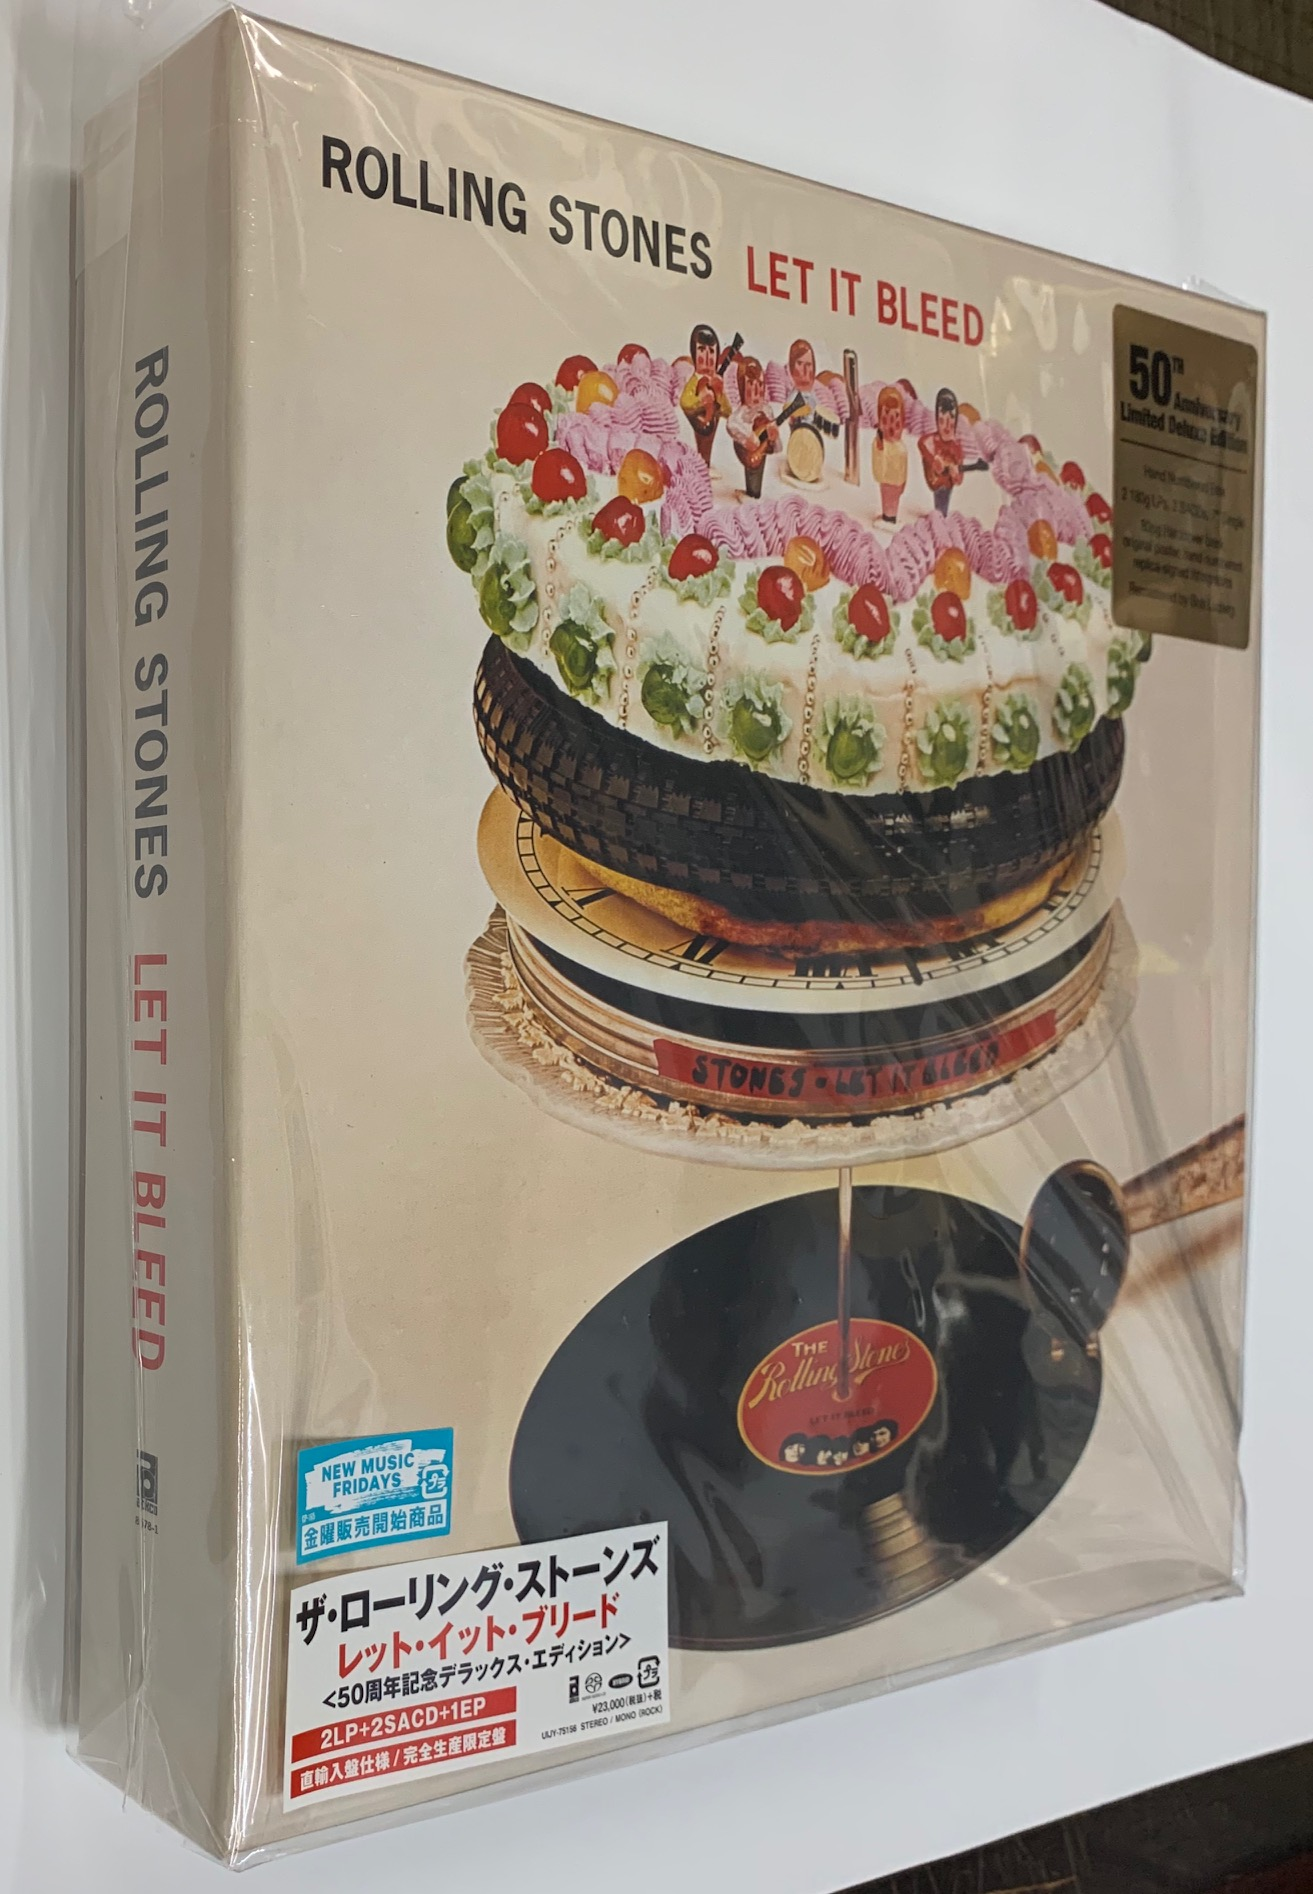 Rolling Stones The Let It Bleed 50th Anniversary